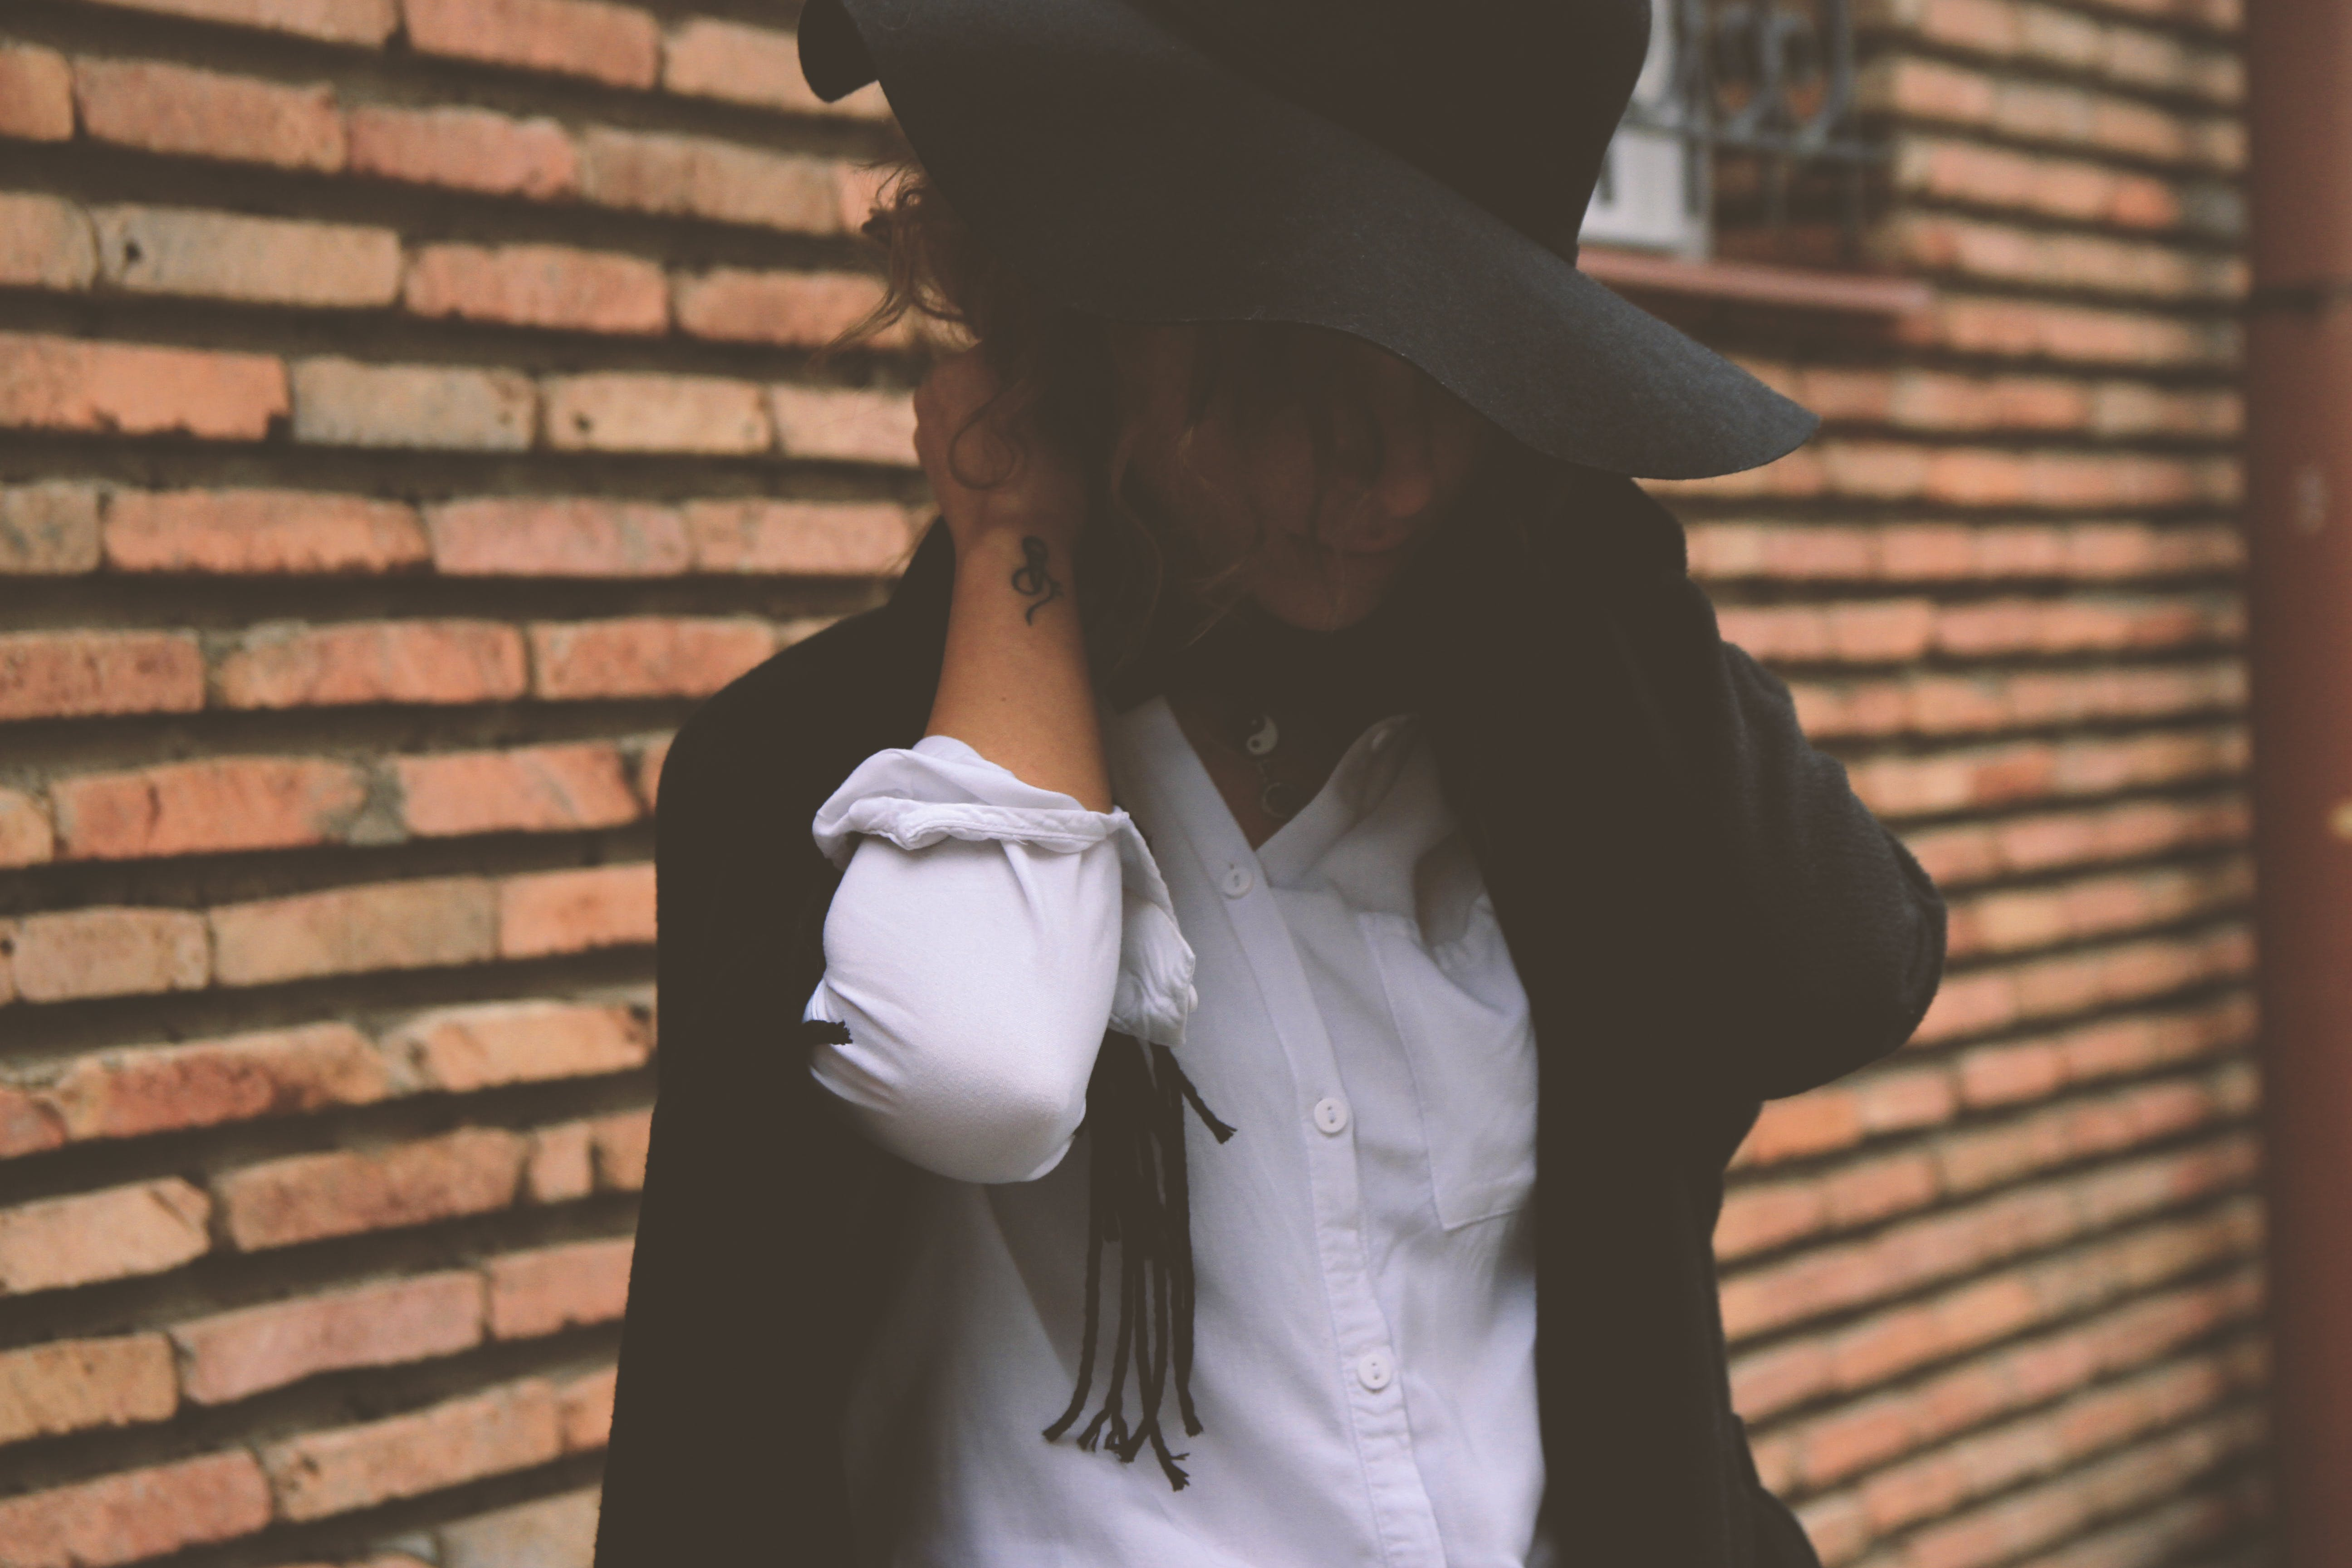 Woman Wearing White Dress Shirt and Black Coat